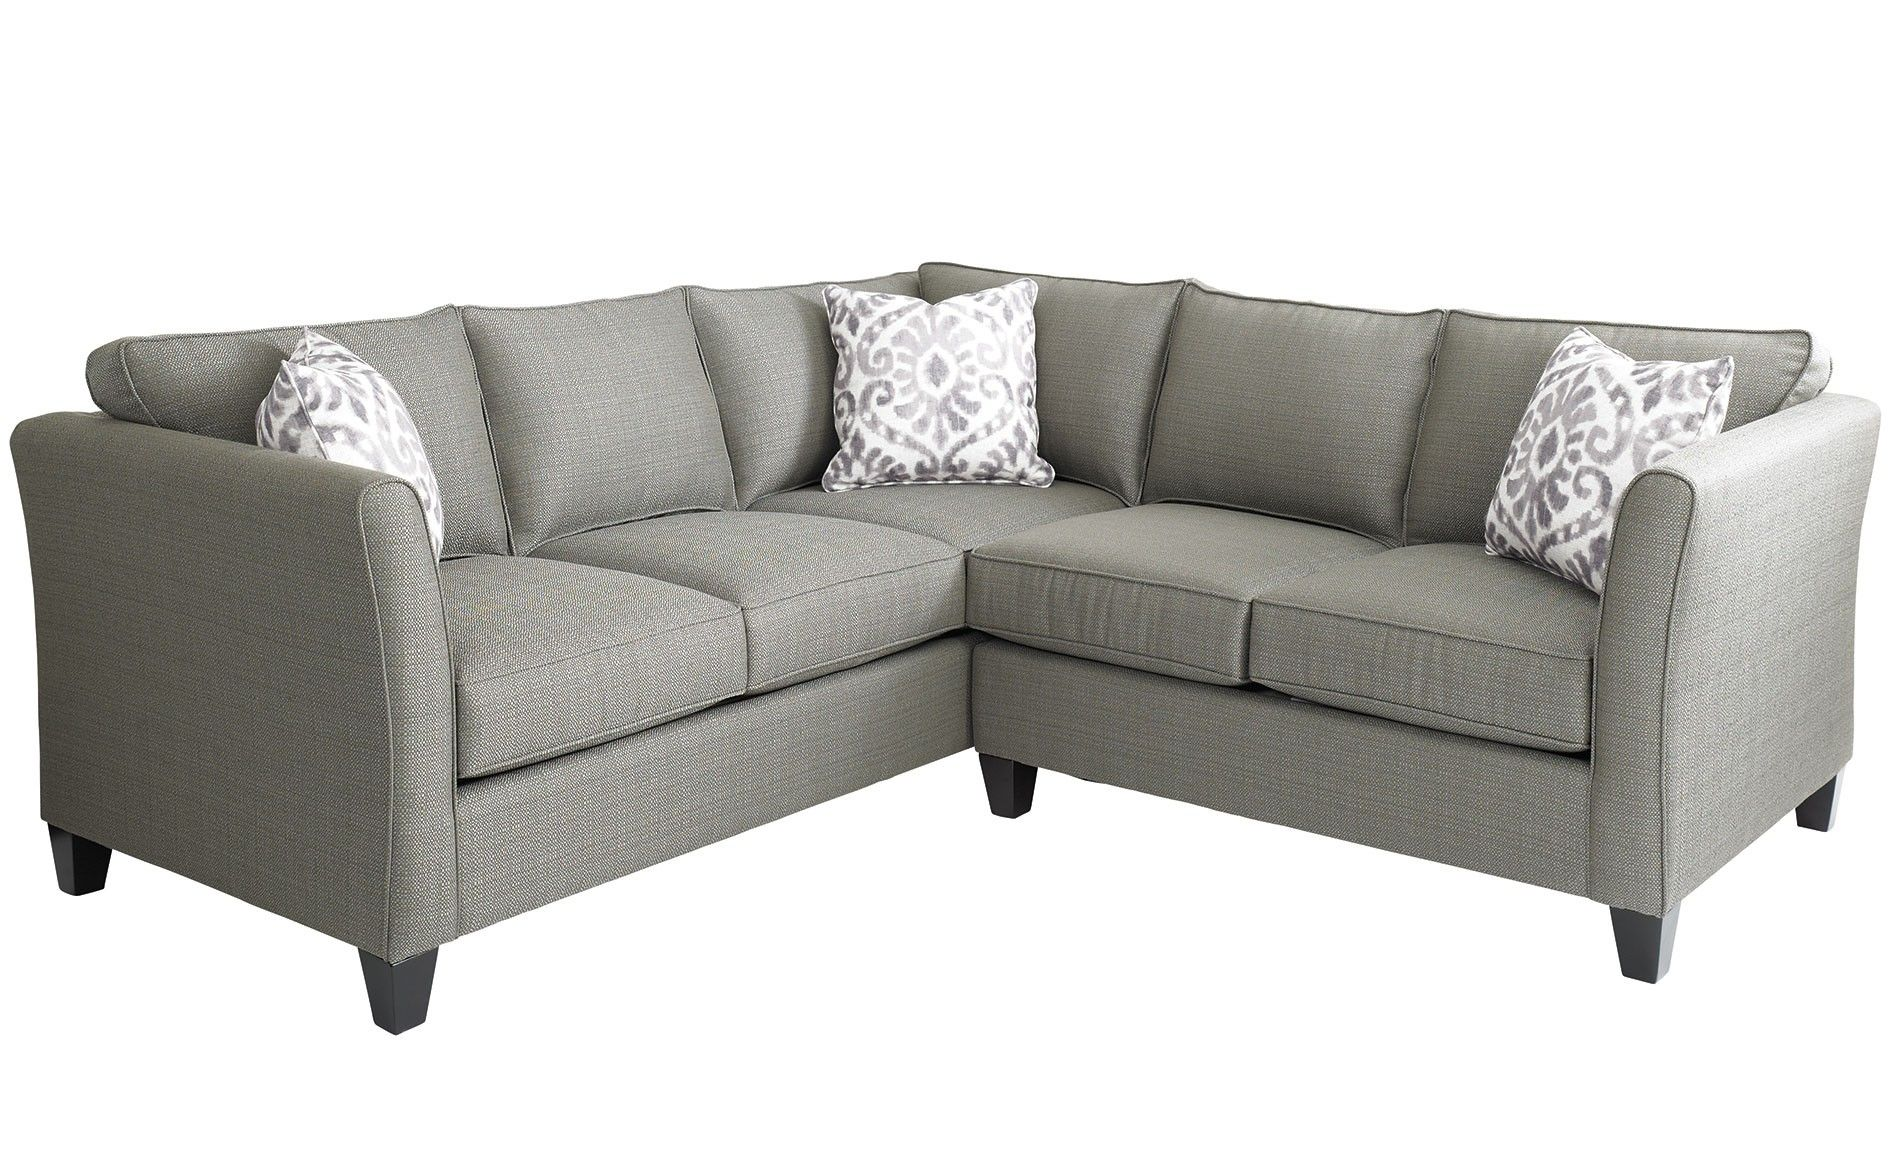 Wondrous Turner Sectional Granite Sectionals Raleigh Furniture Download Free Architecture Designs Rallybritishbridgeorg